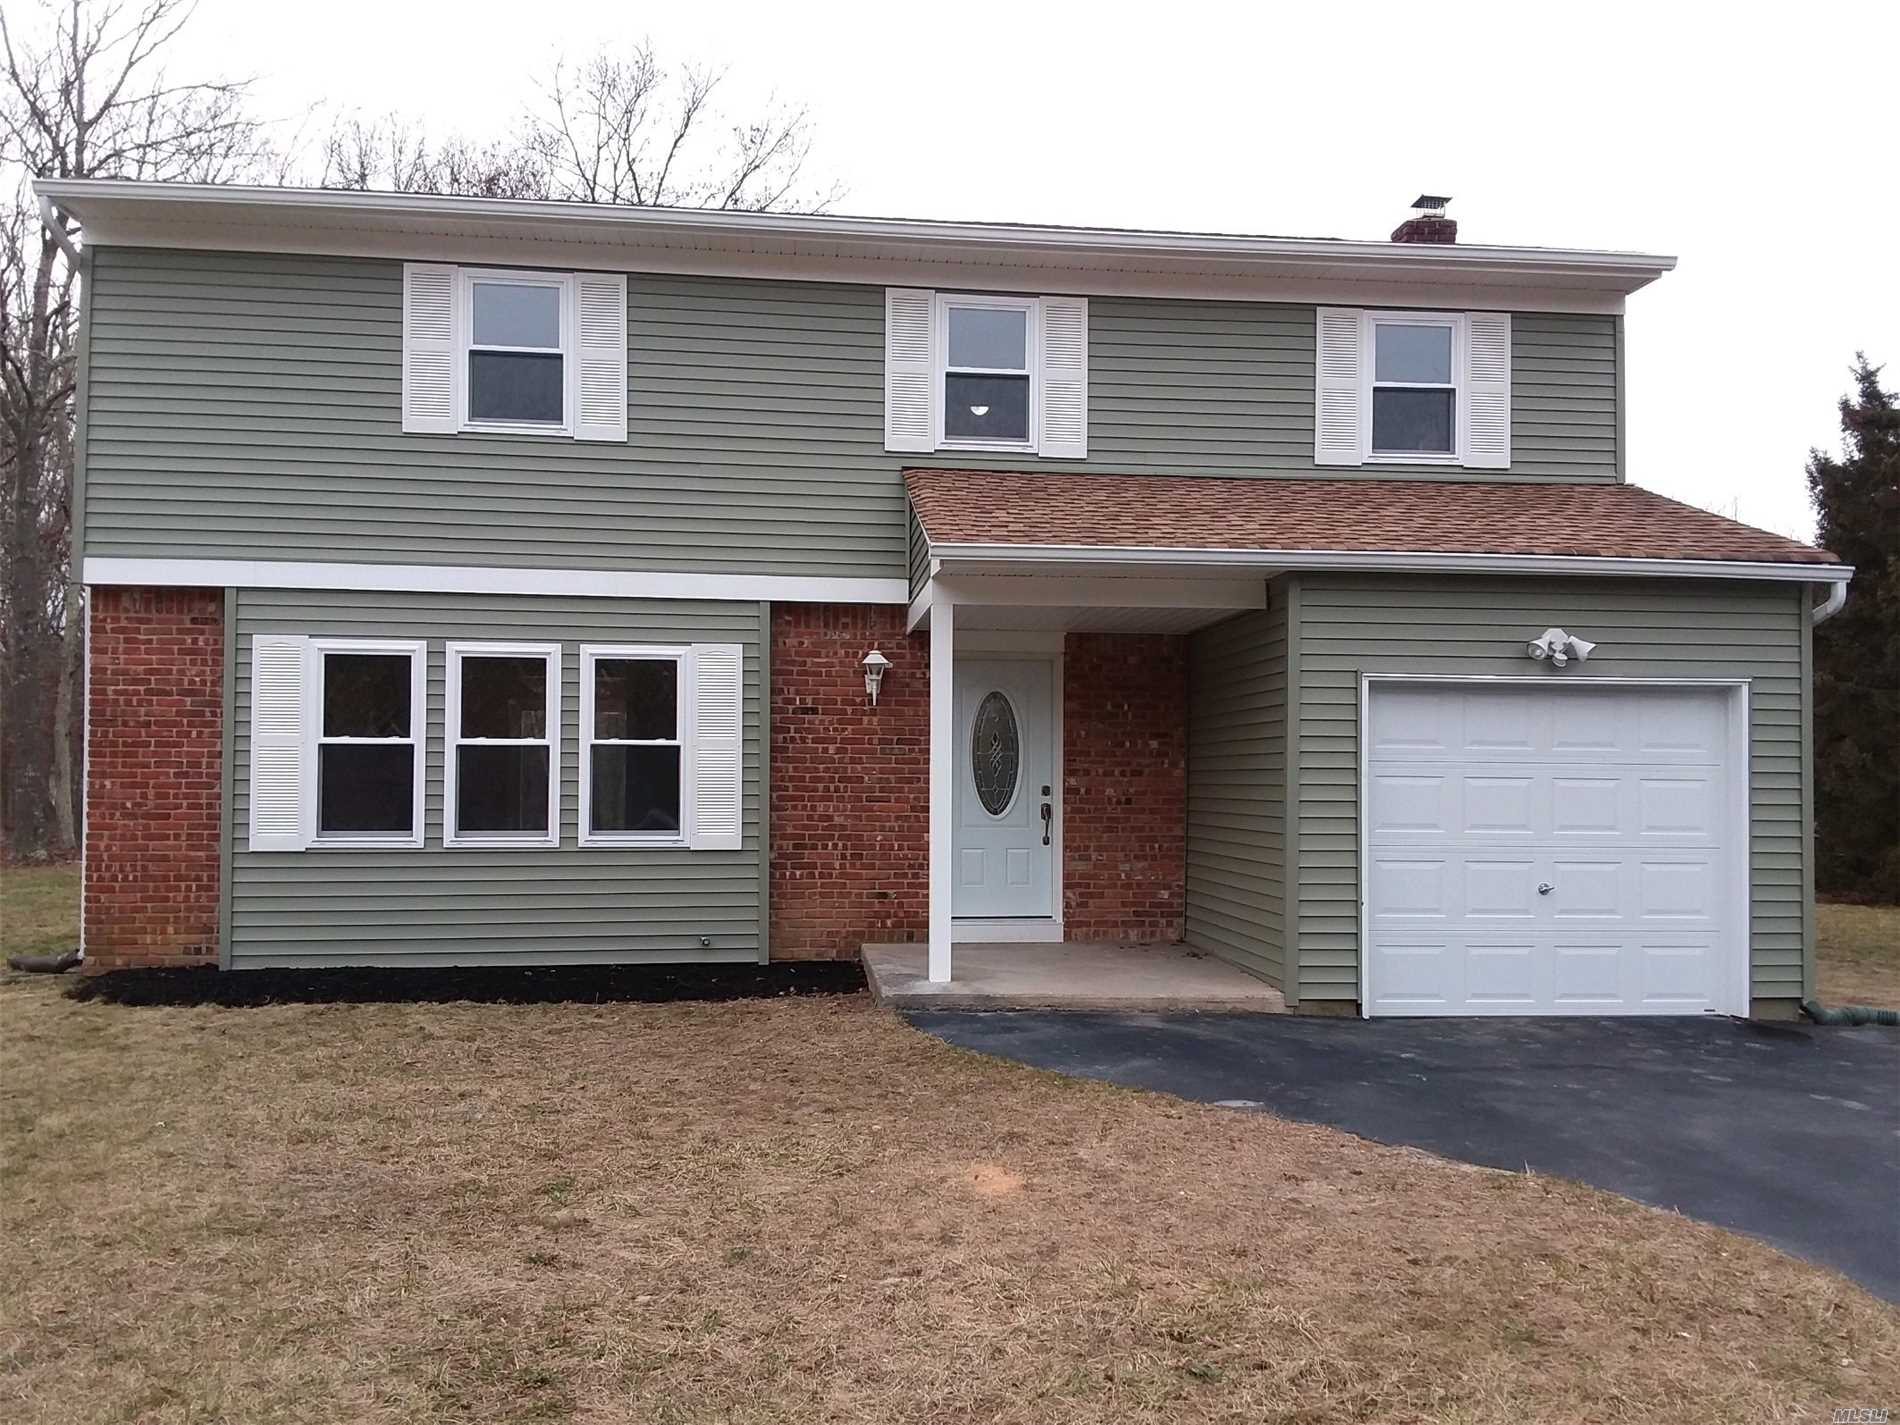 4 Br Colonial With Updated Kitchen, Bathrooms, Siding, Windows. Beautiful Property-Just Shy Of An Acre. Just Unpack And Move Right In!  The Lower Taxes Make This Property More Affordable.